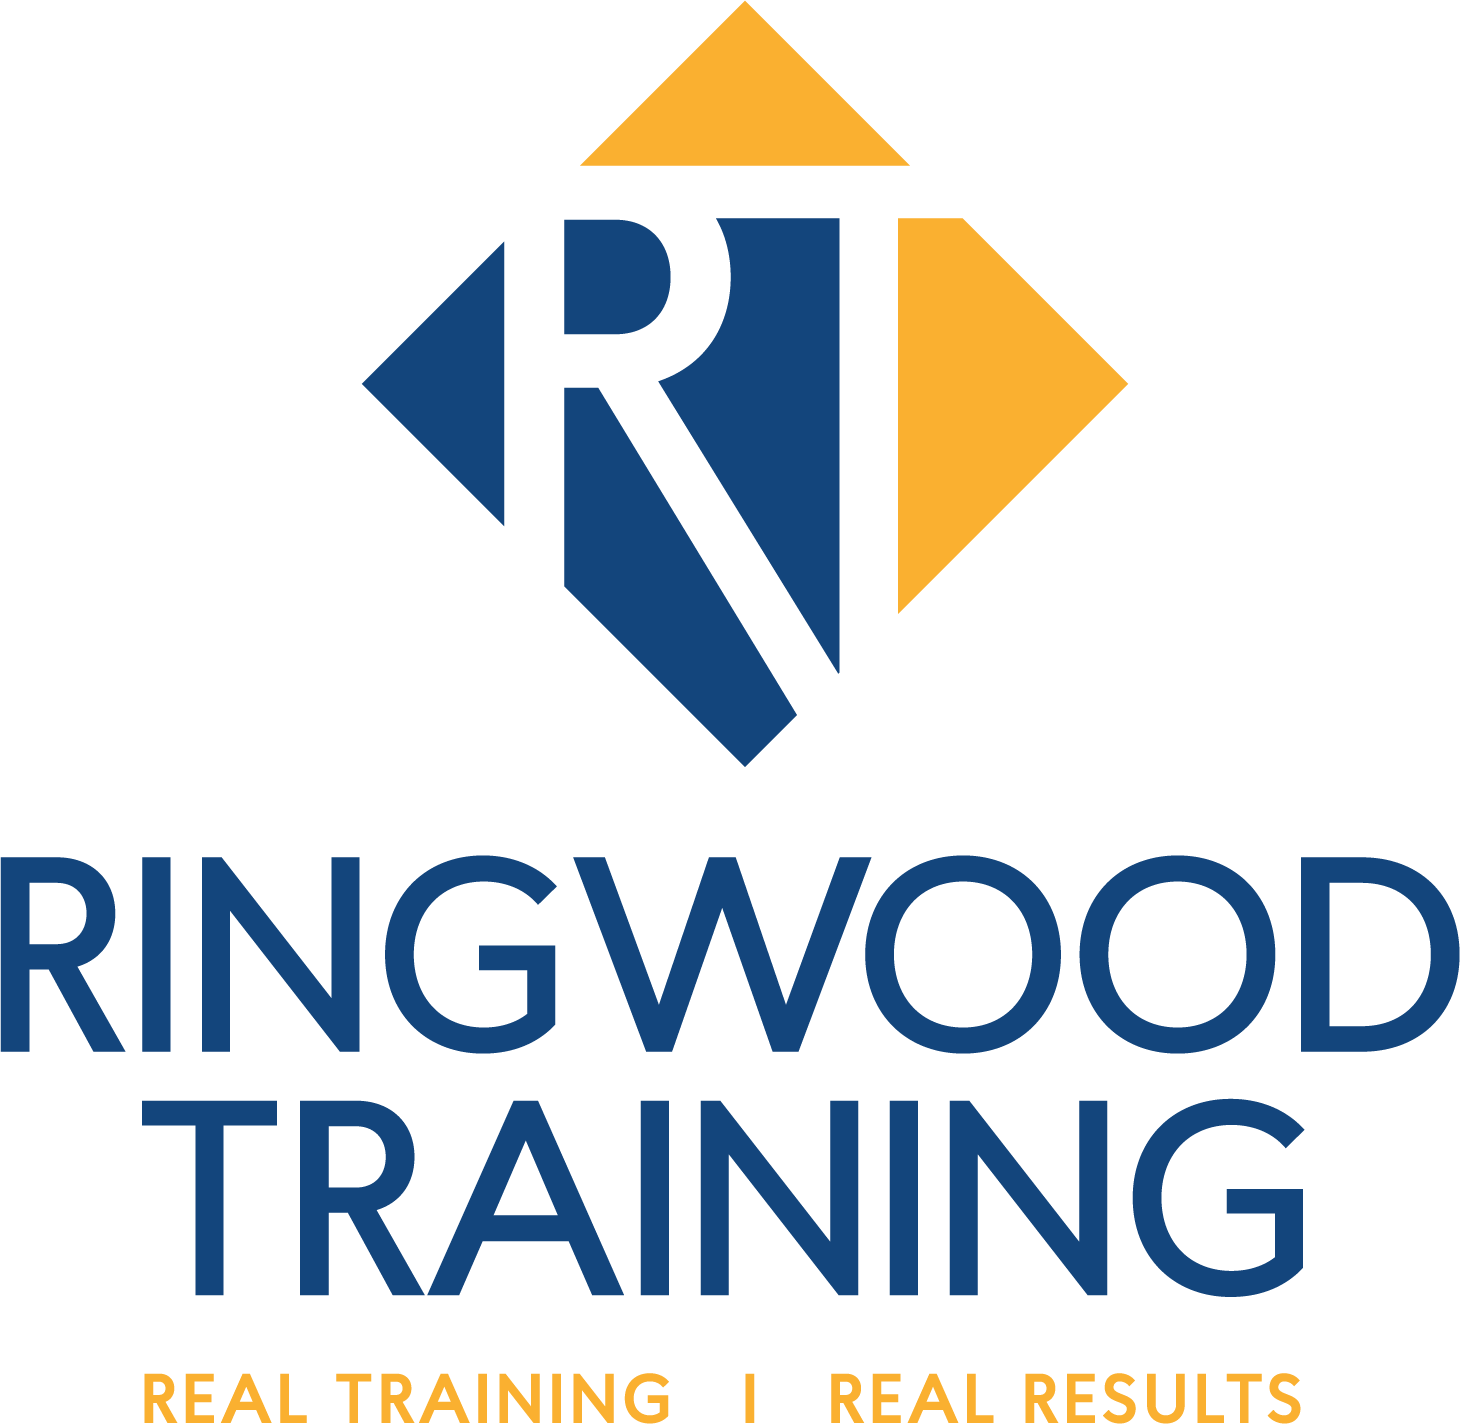 Information Technology and Cisco Networking - Ringwood Training - RT